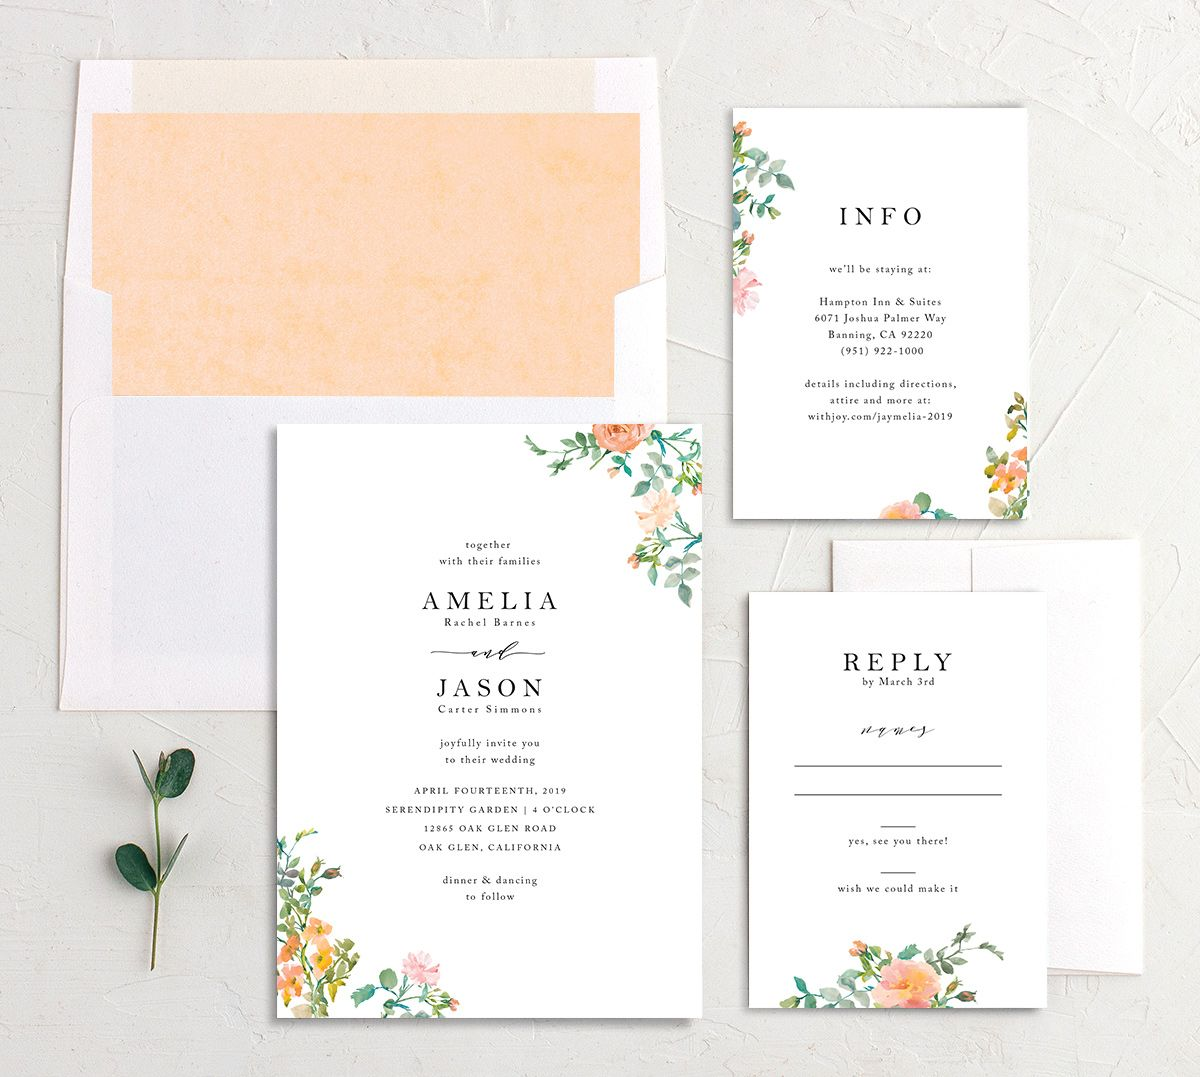 Minimal Floral wedding invitation suite